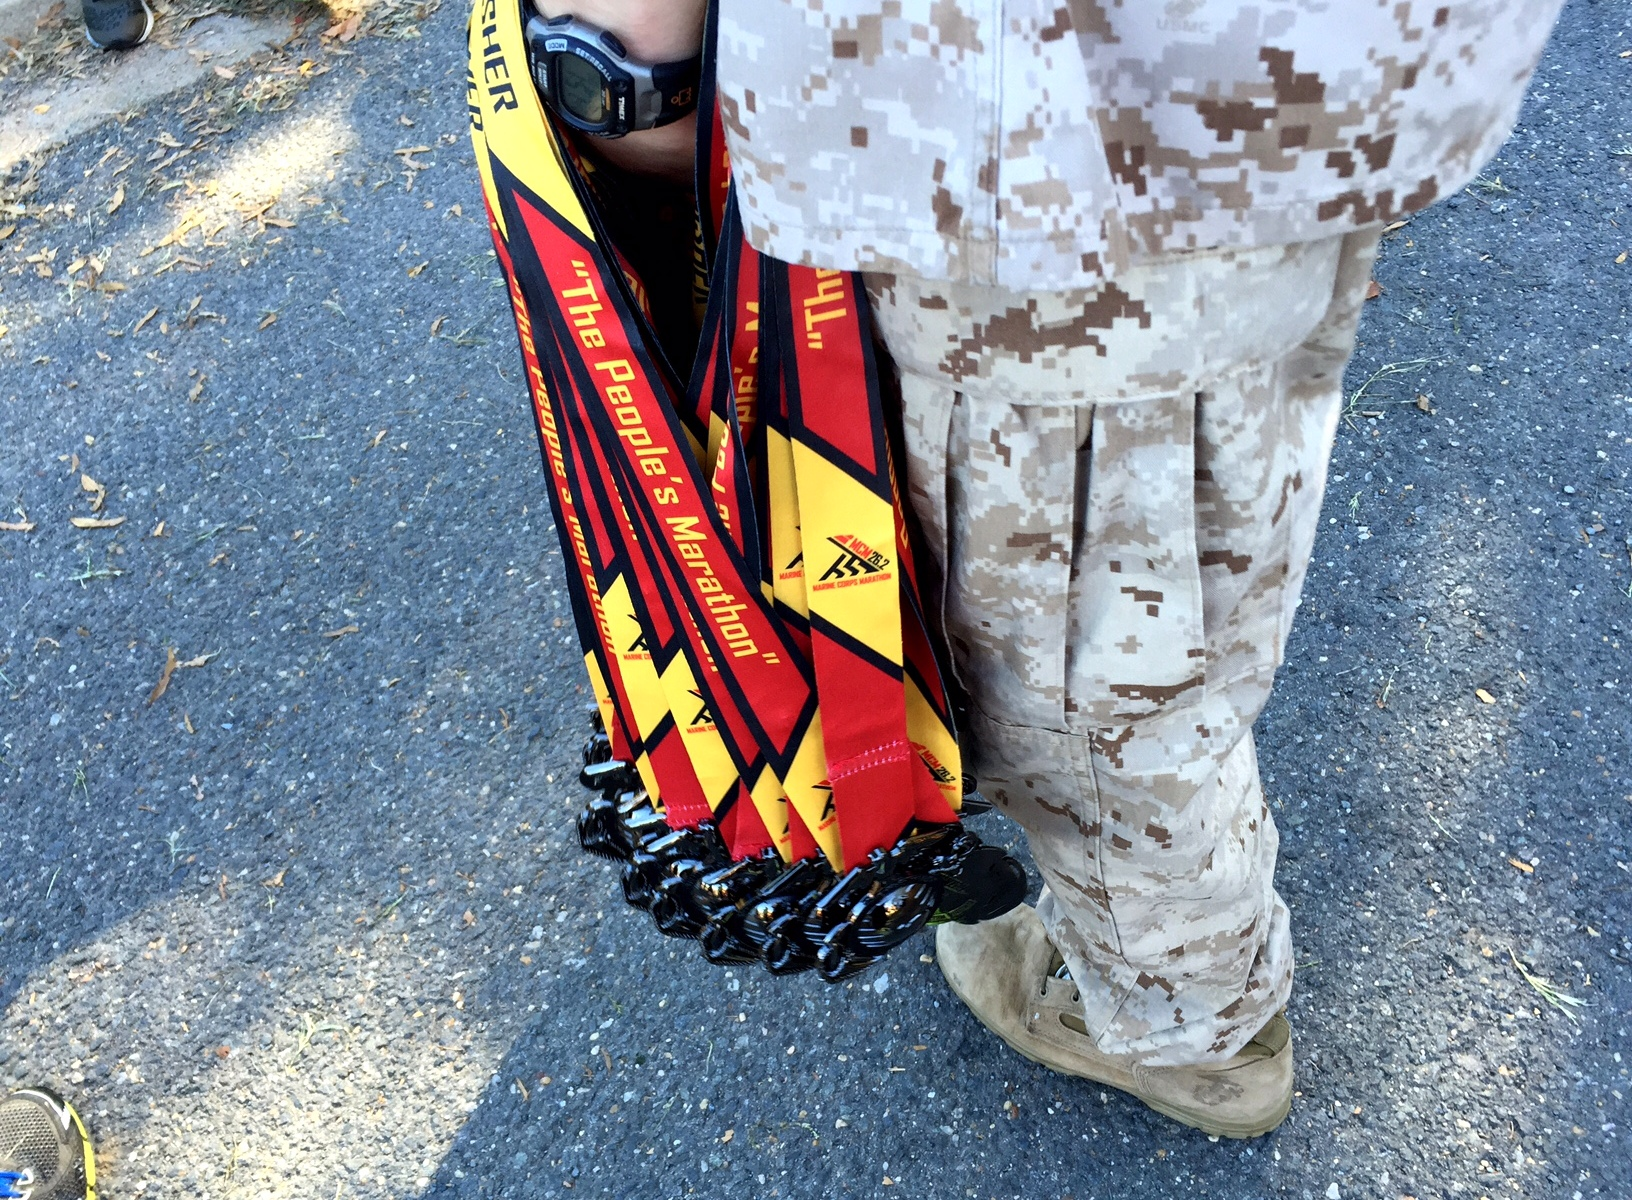 A Marine holding medals at the 2014 Marine Corps Marathon.